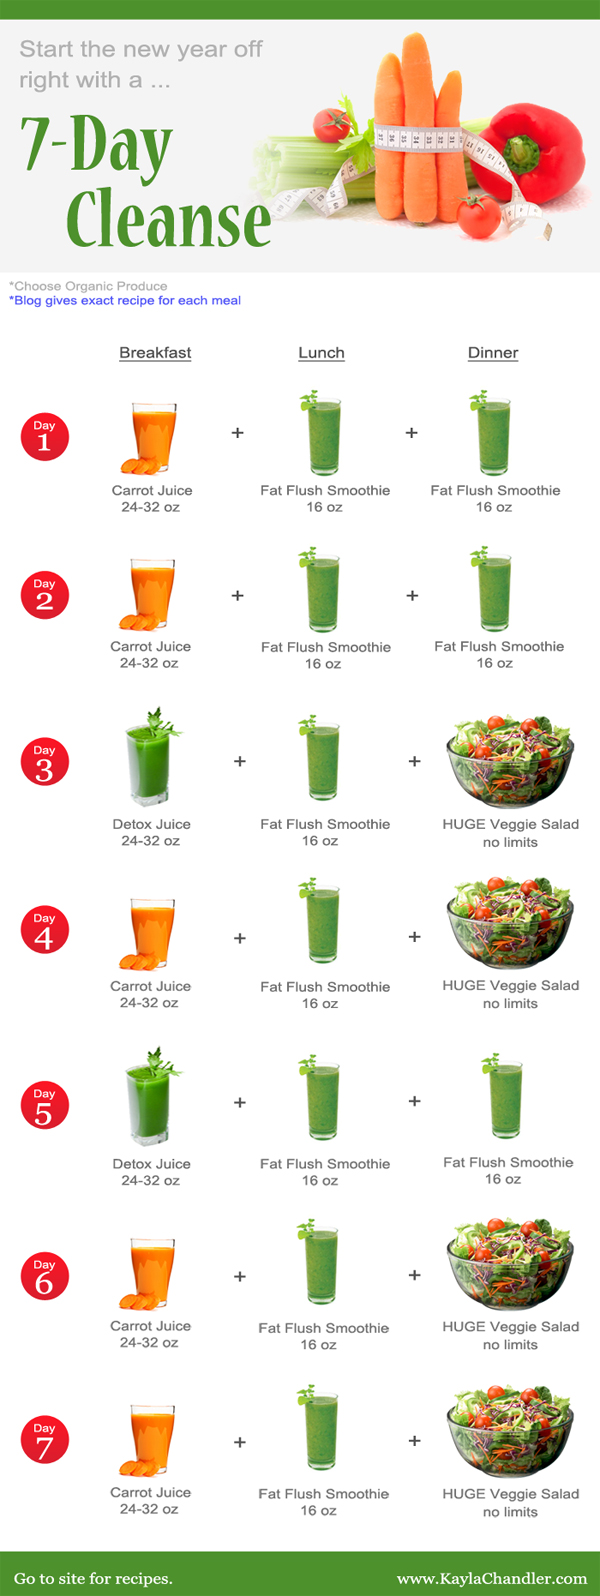 Juicing Recipes for Detoxing and Weight Loss